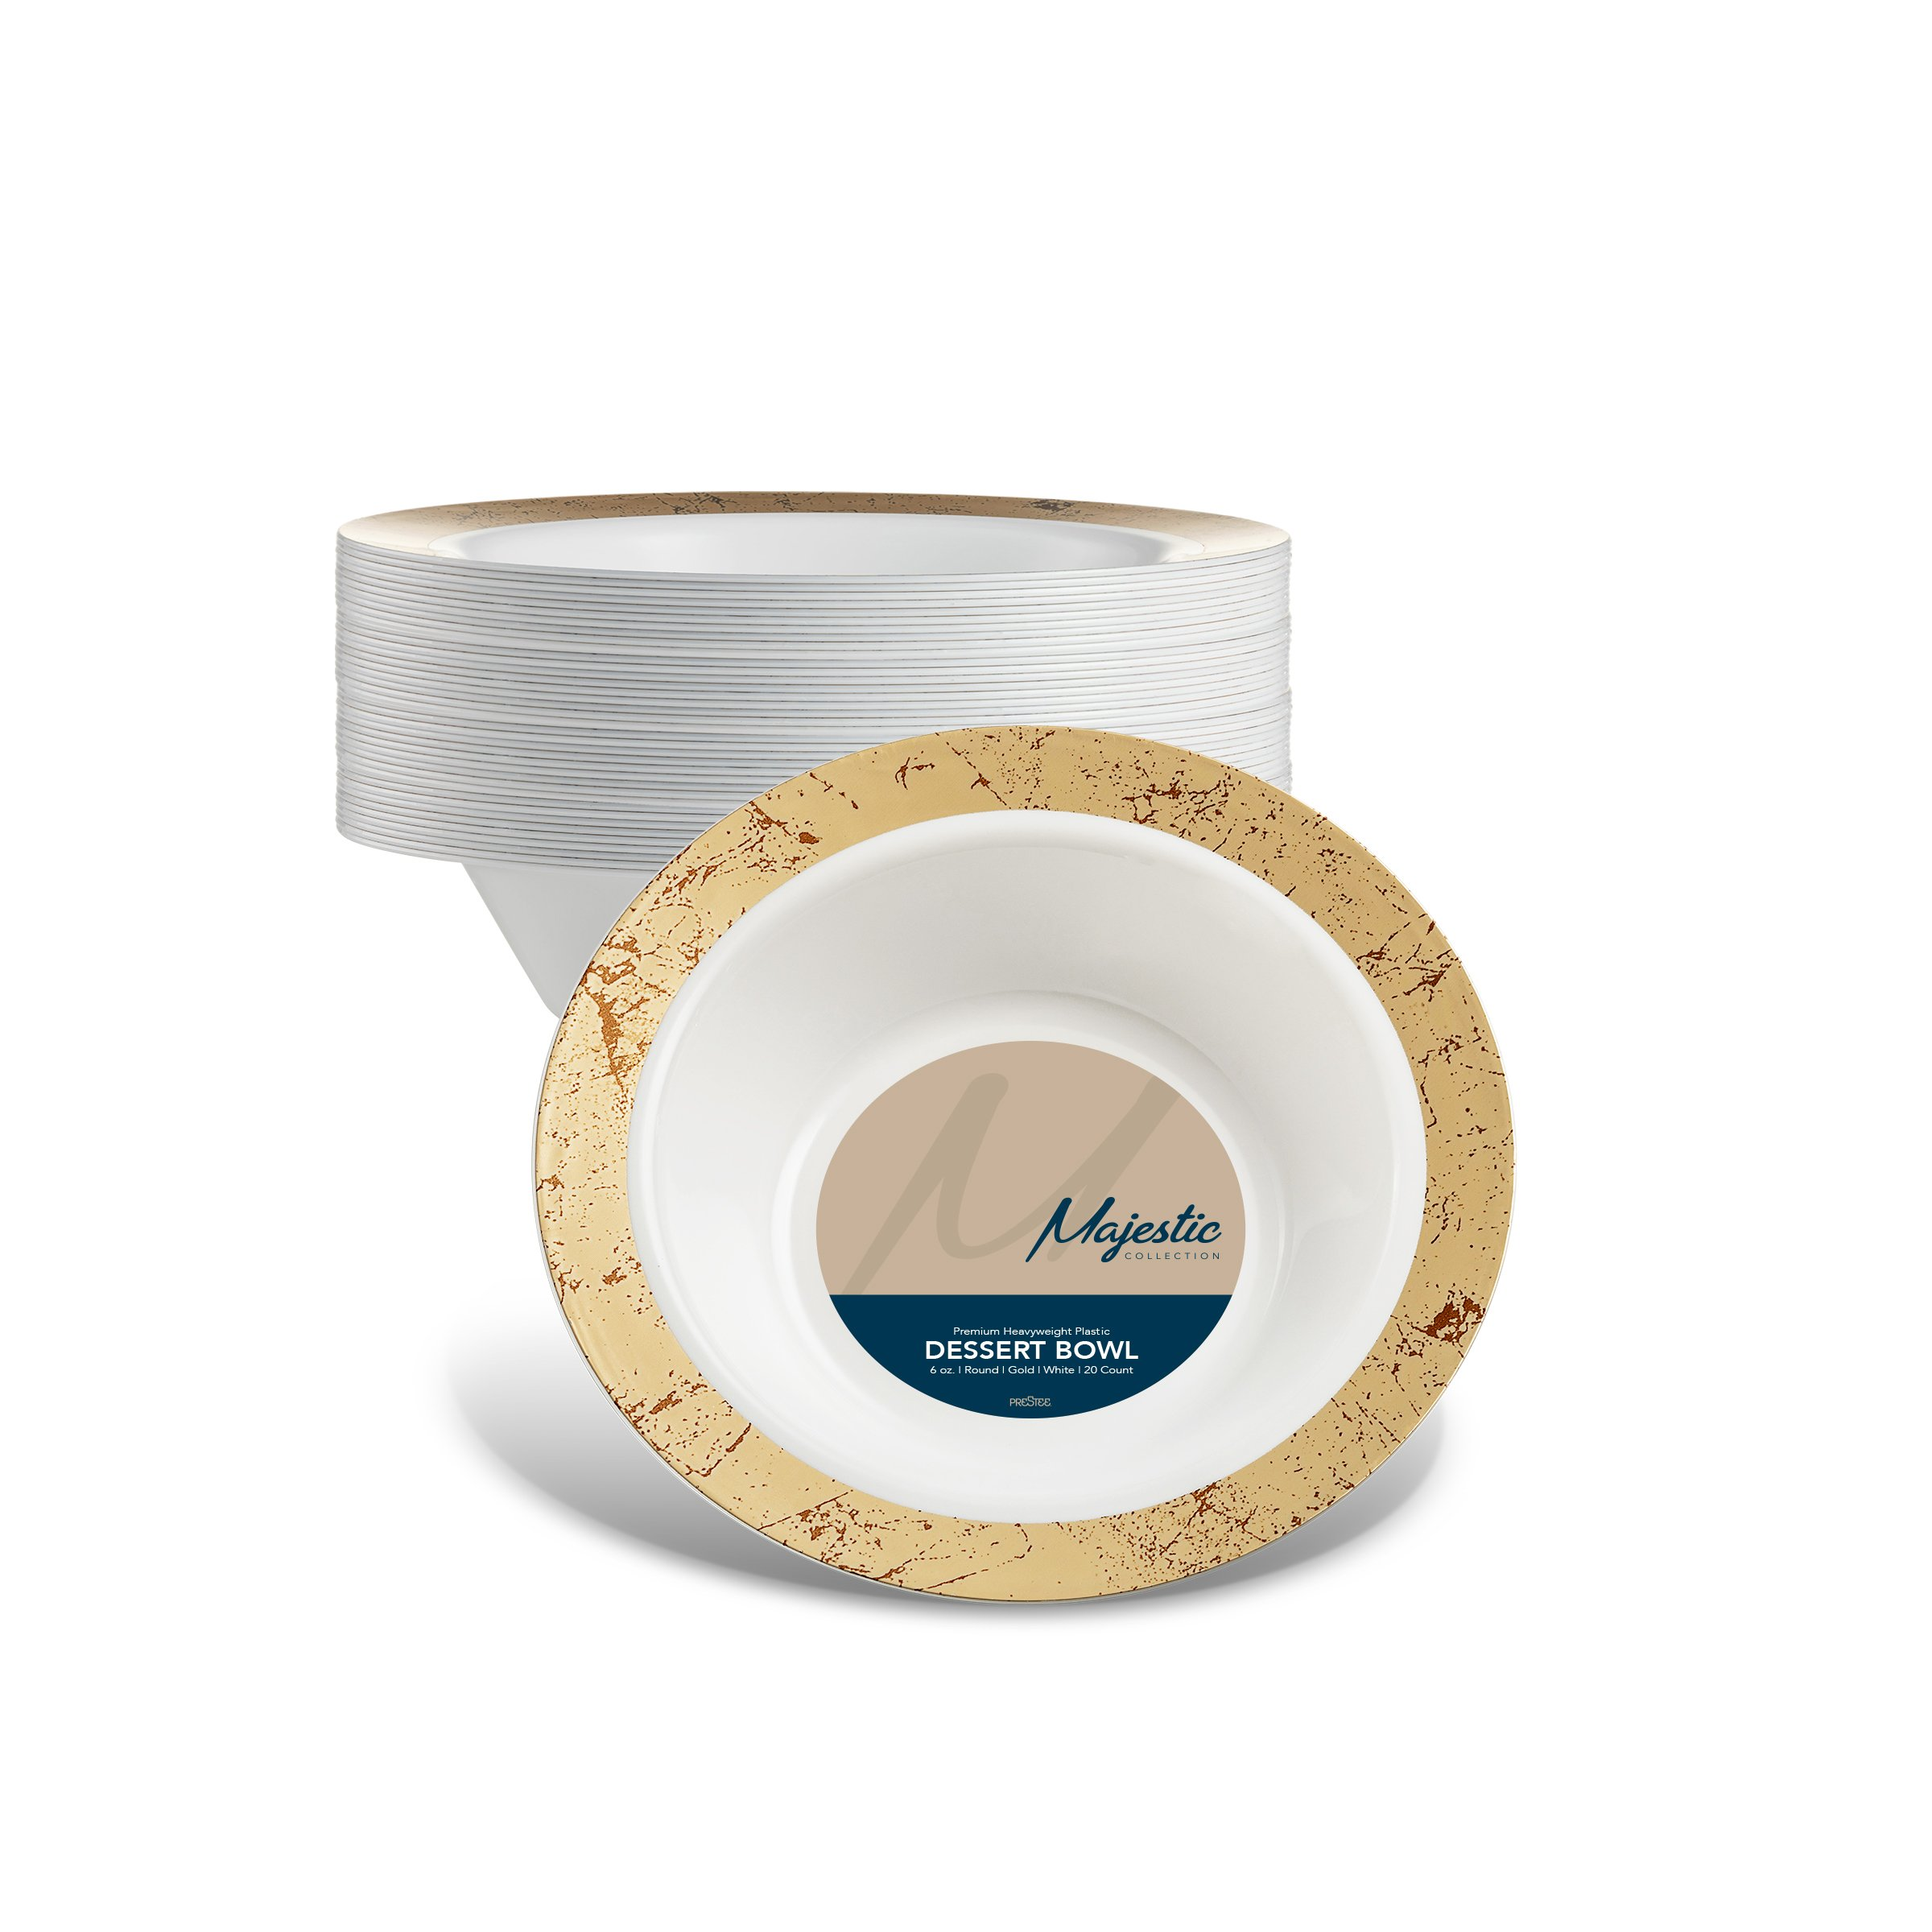 MAJESTIC 6-Oz. Plastic Dessert Bowls | 40 Pack | White with Gold Speckled Rim | Disposable | For Weddings, Parties, Holidays & Occasions.